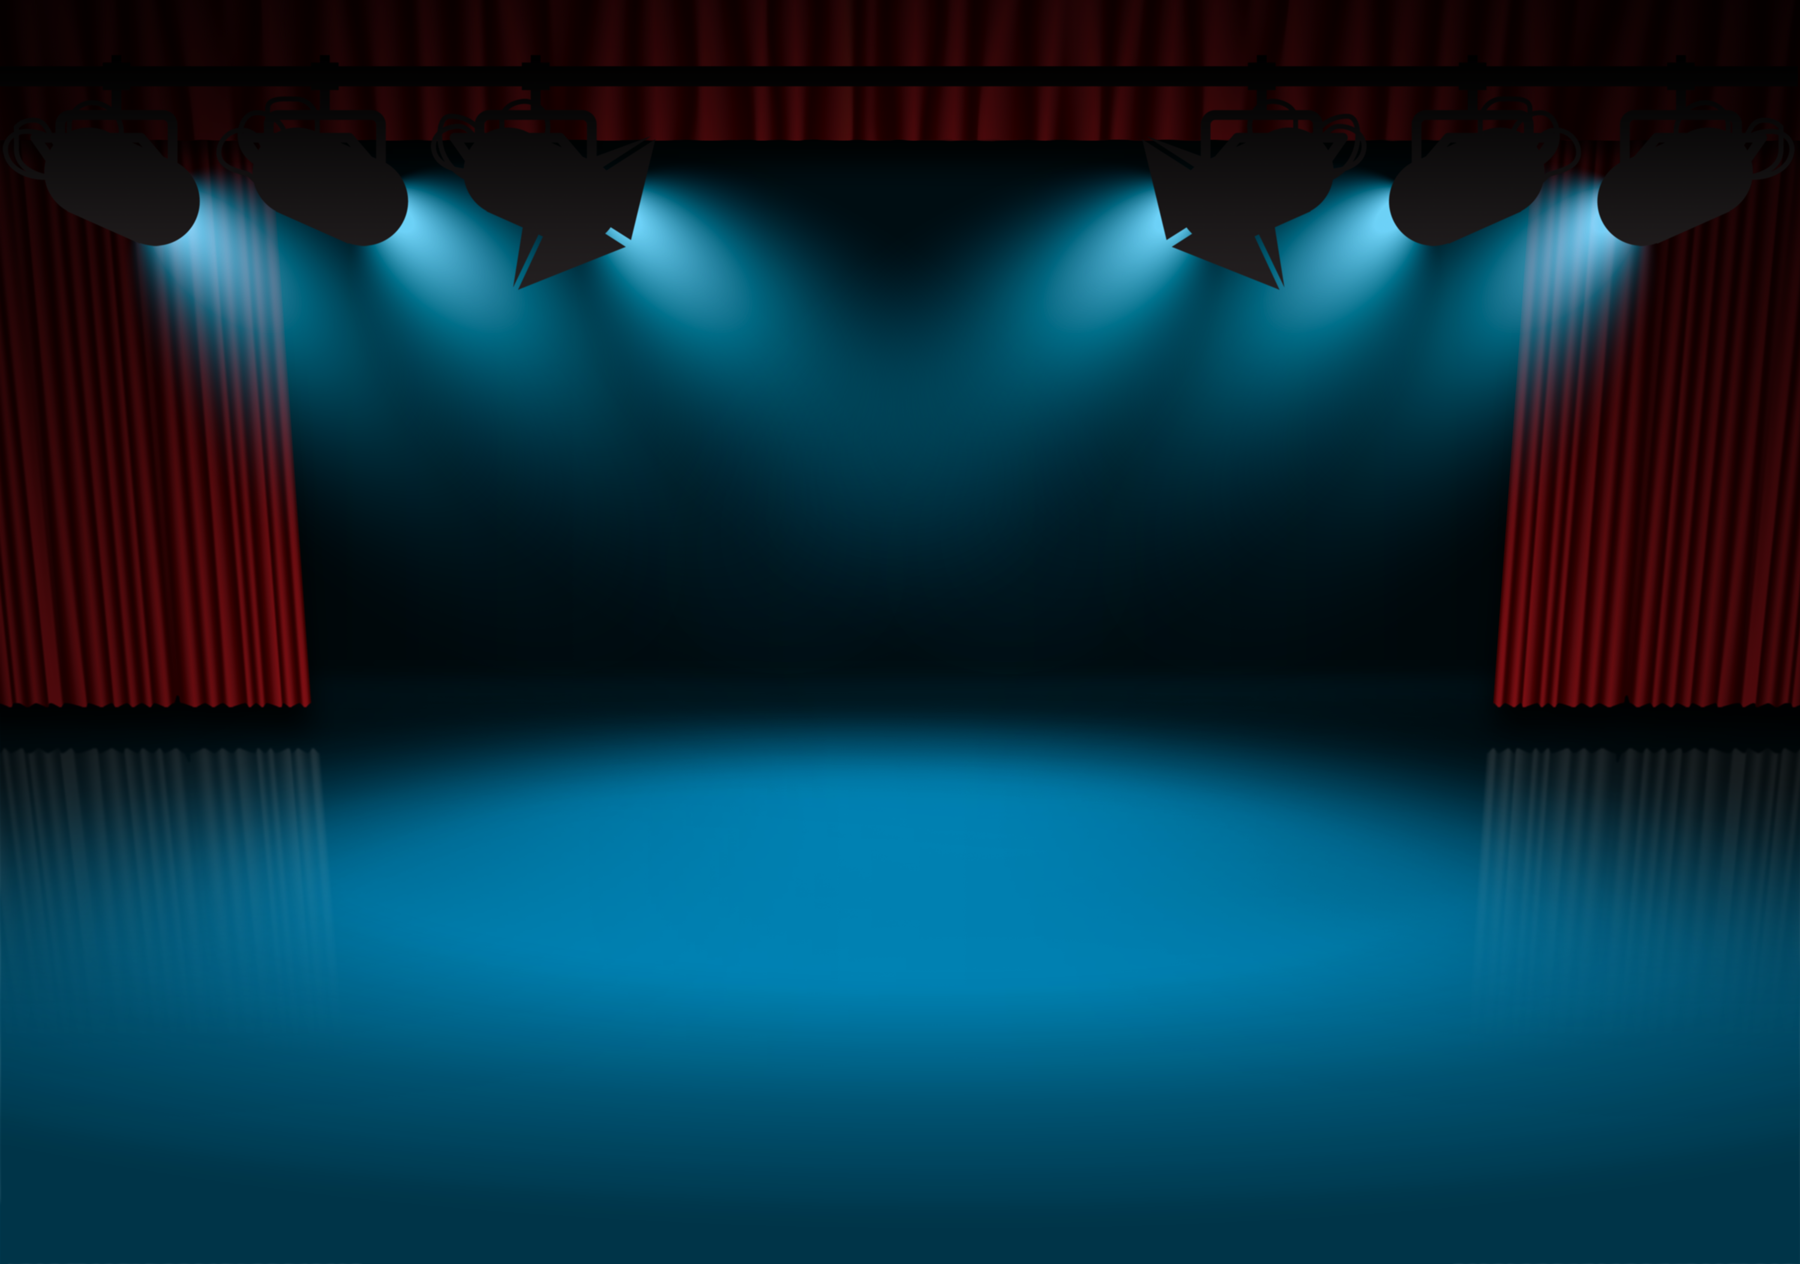 Theater Backgrounds Png - Theater Stage PNG HD Transparent Theater Stage HD.PNG Images ...